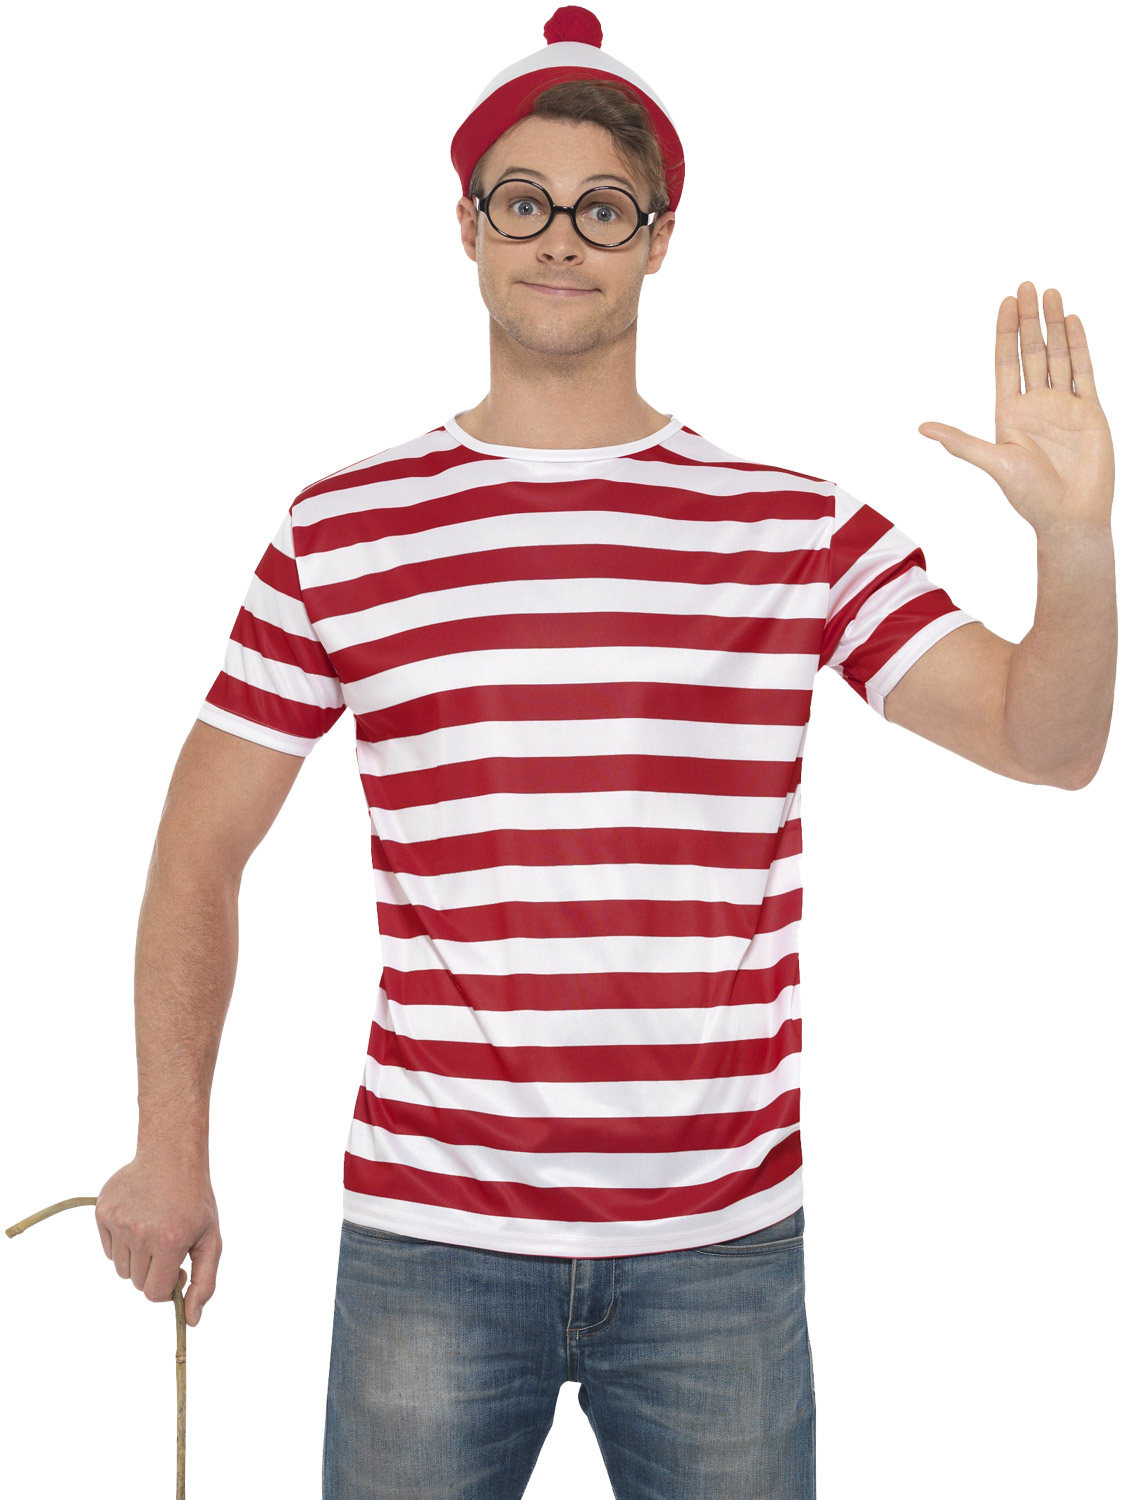 Mens wheres wally costume adult waldo instant fancy dress kit book transform yourself into one of your favourite book characters with this wheres wally costume ideal for a stag party or even book week solutioingenieria Gallery